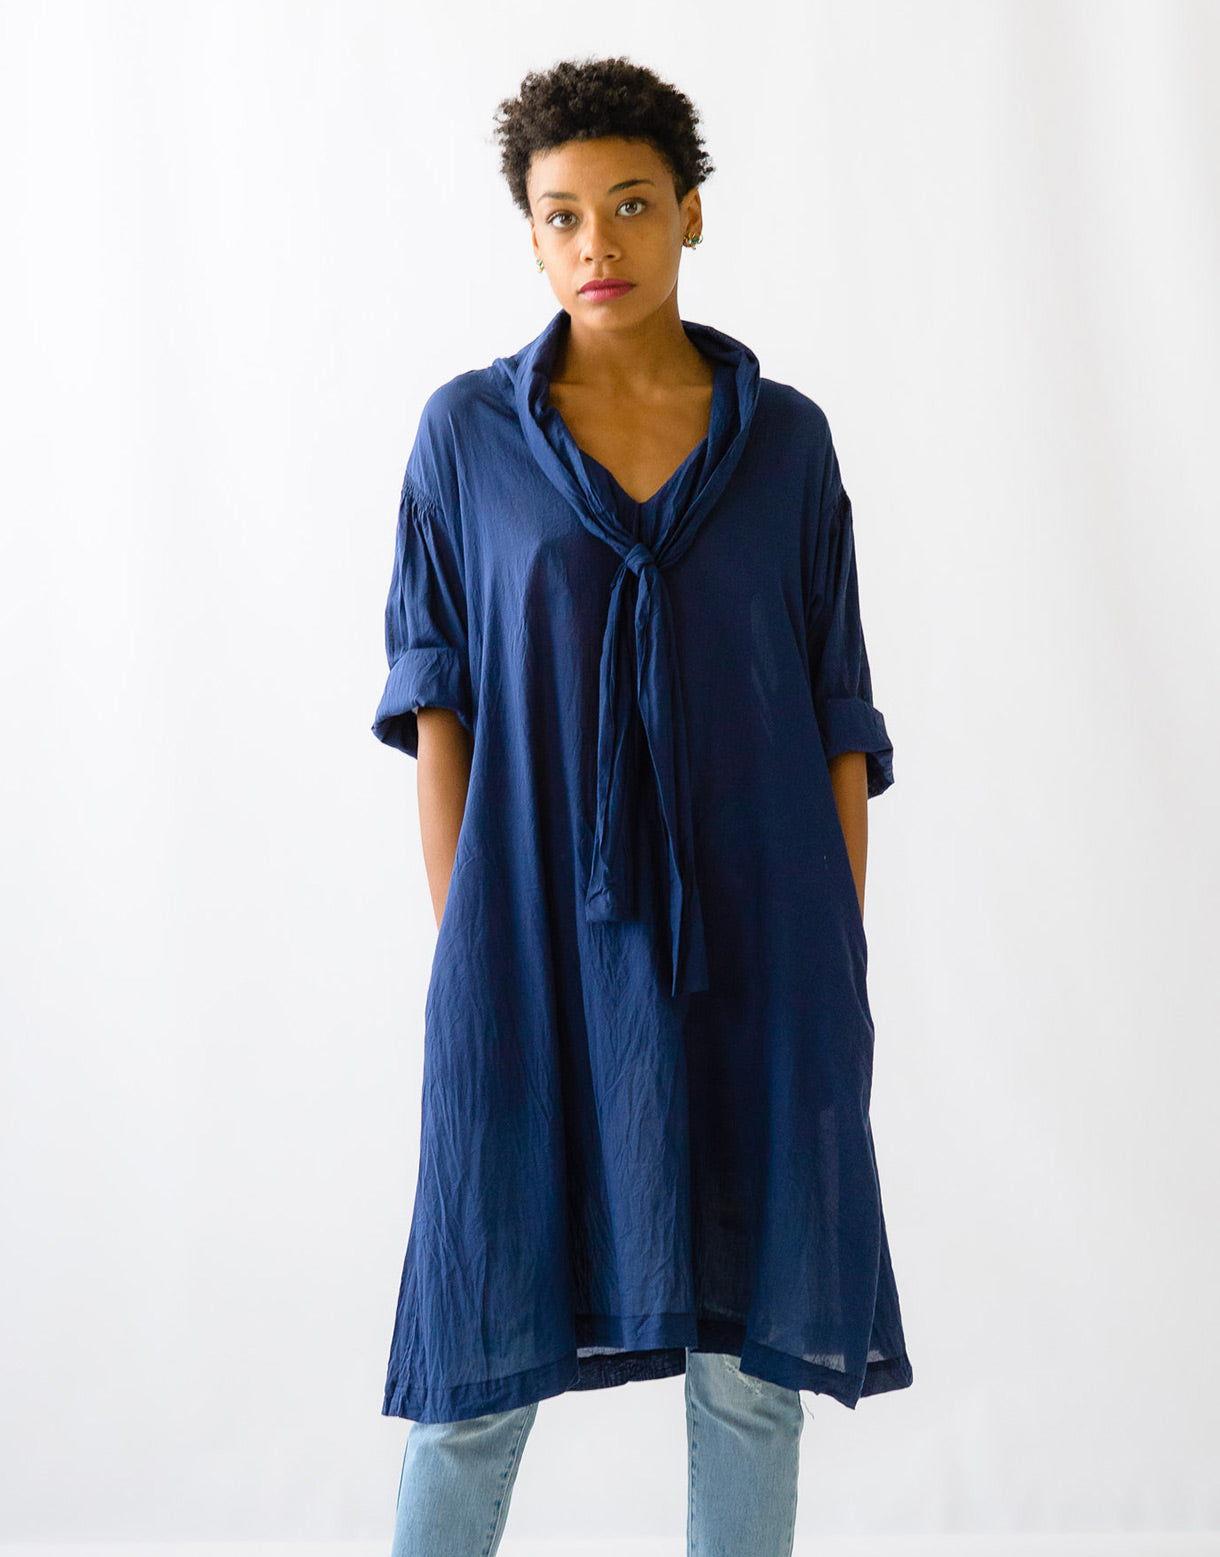 Aster tunic in Deep Blue *organic cotton